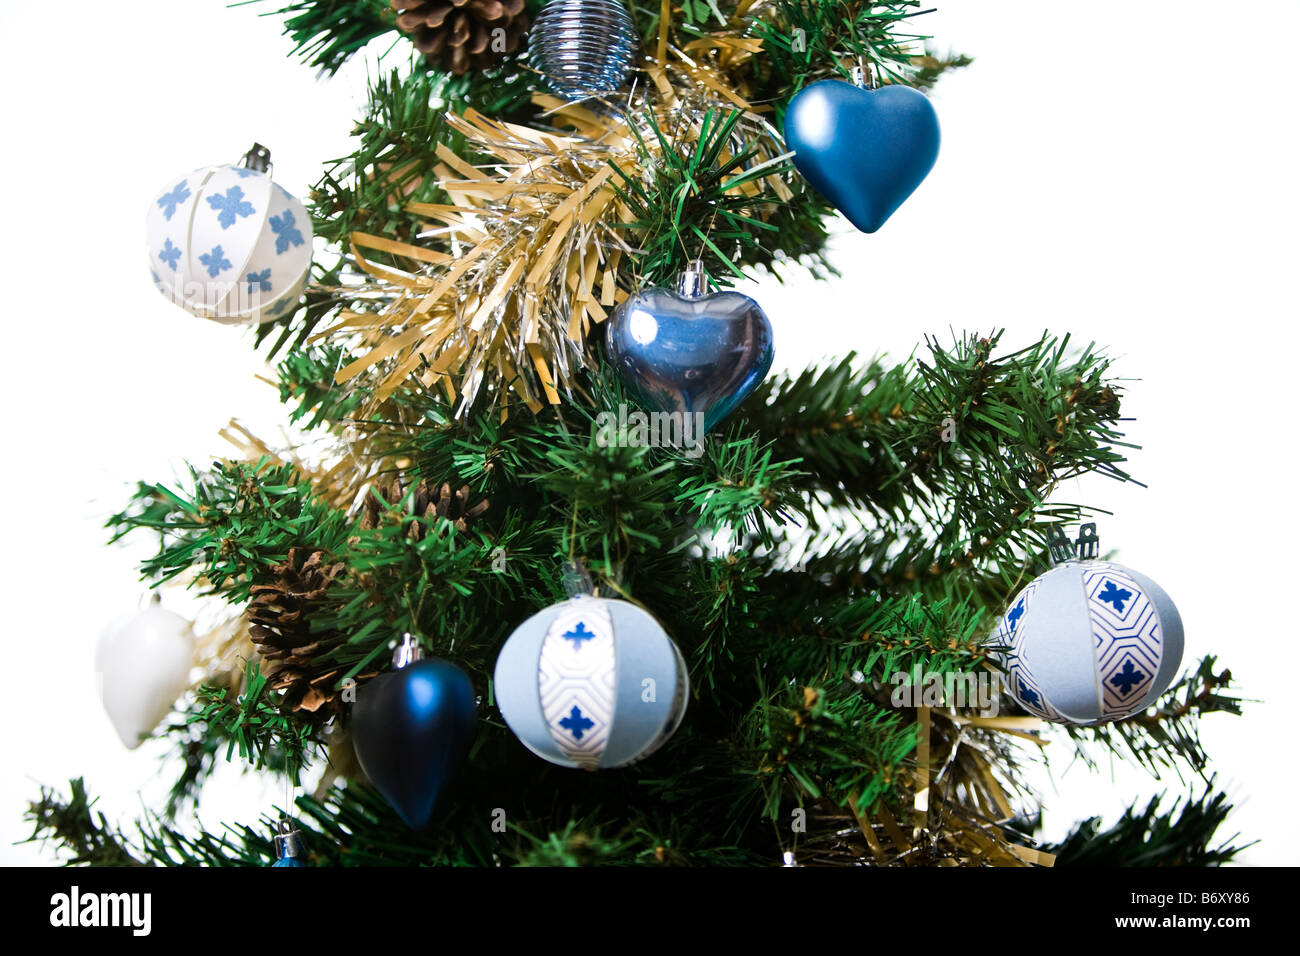 Christmas Tree Stock Photos & Christmas Tree Stock Images - Alamy